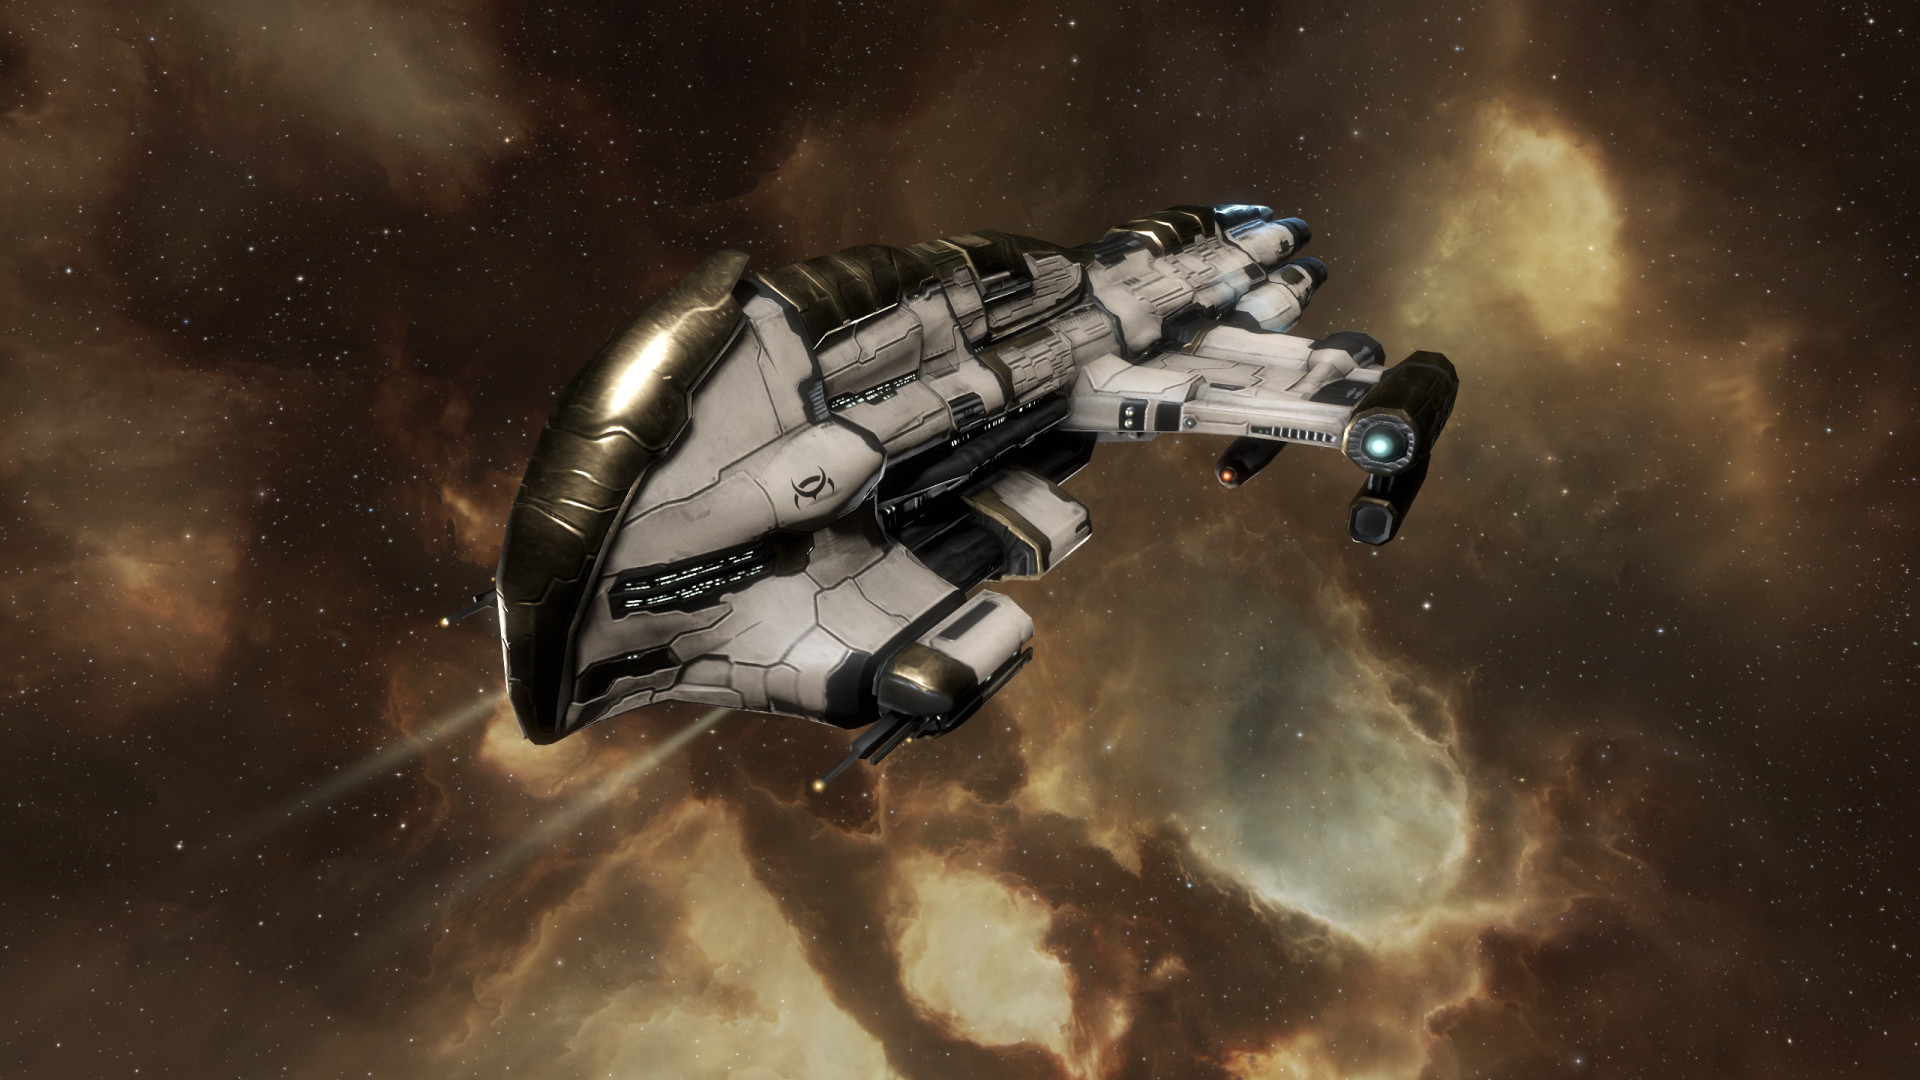 Eve online how to call concord for assistance